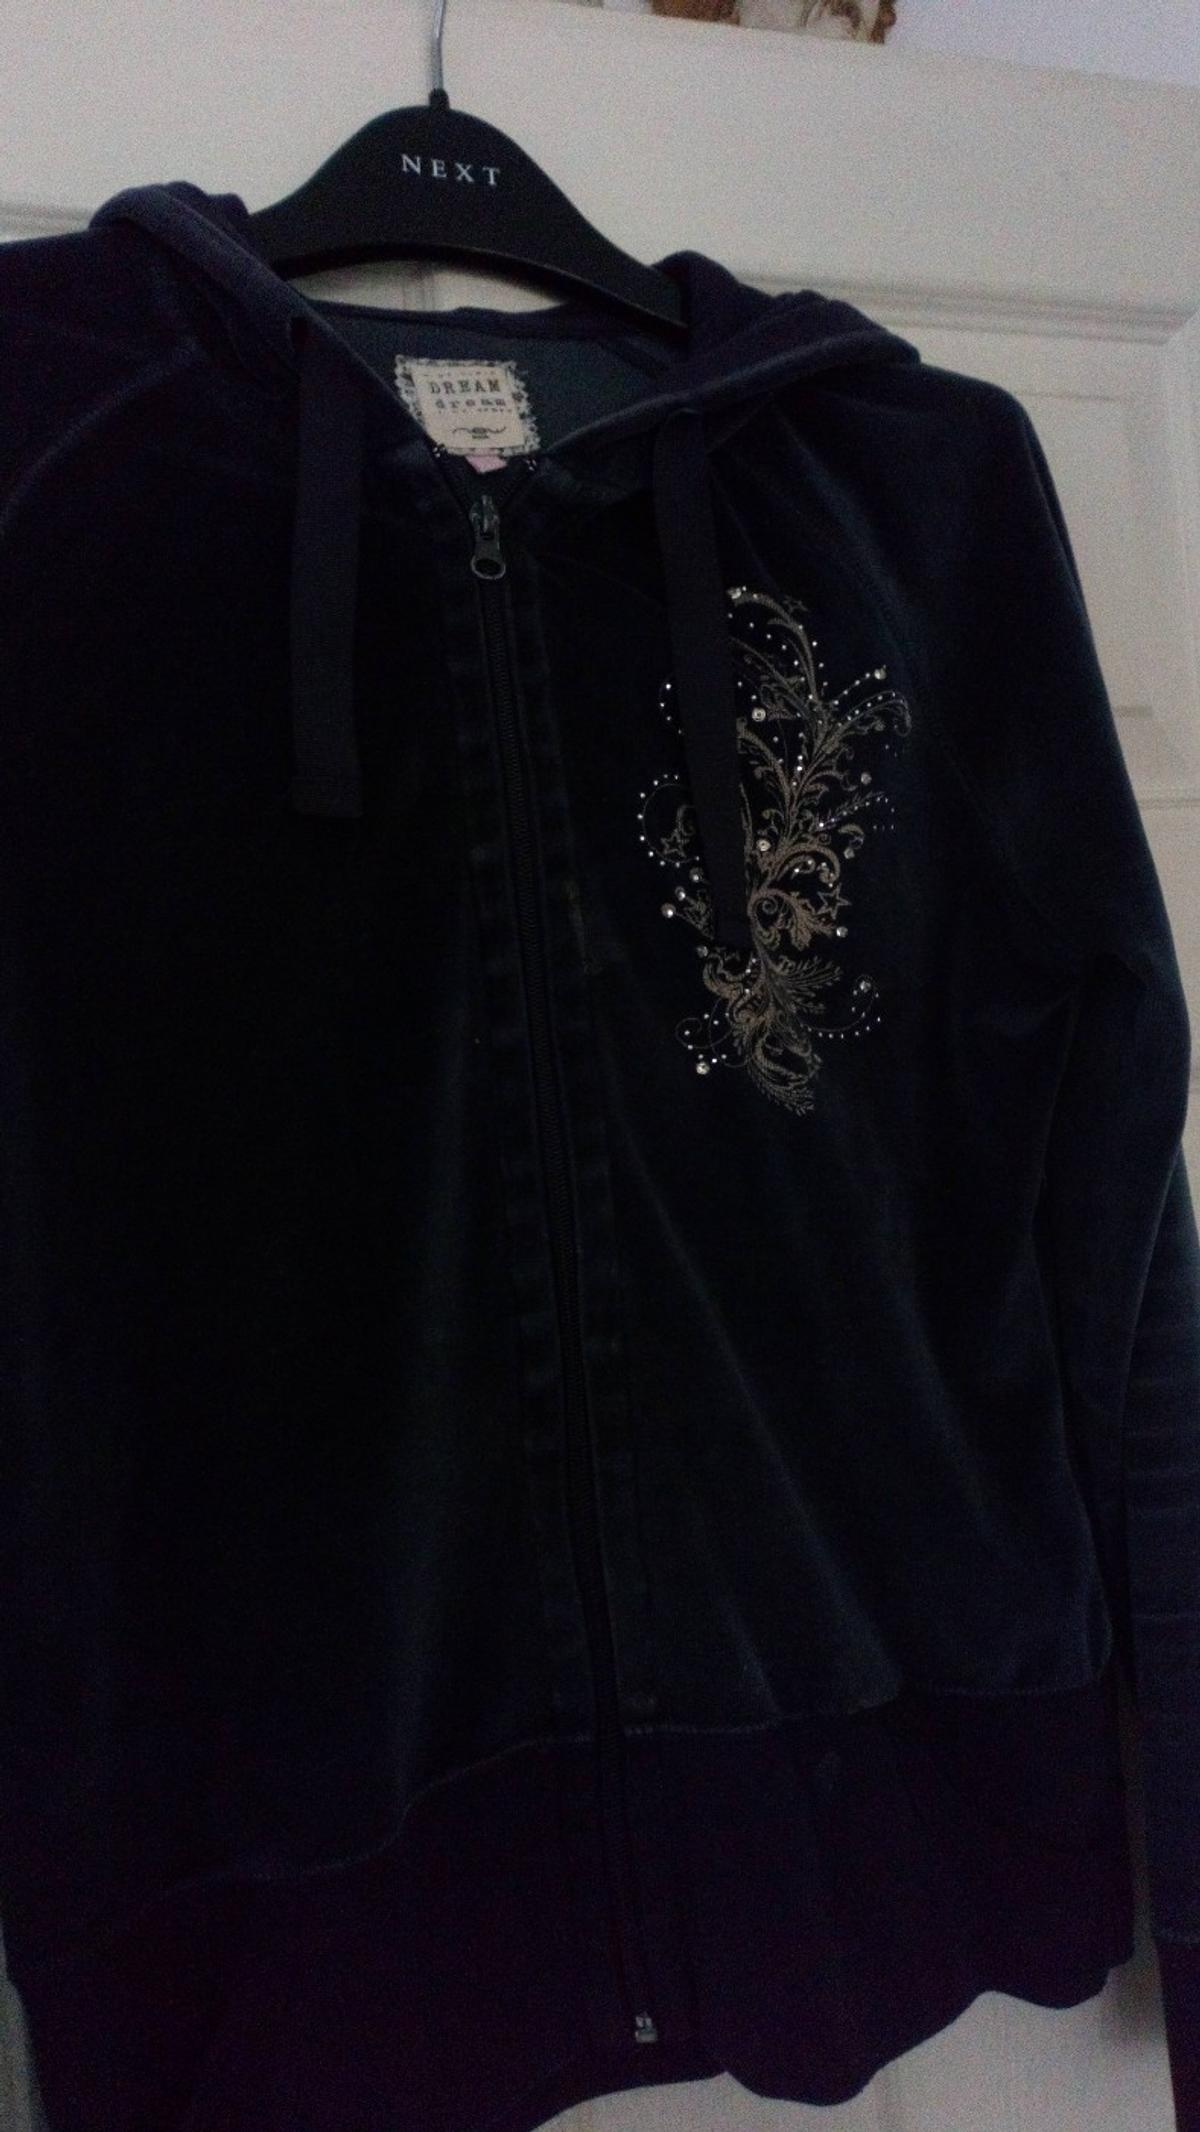 Blue lounge wear hooded top navy blue with a sparkle emblem from new look. Fits more a 12 than a 14. Lovely soft and comfortable. Good condition collection only please. 👍